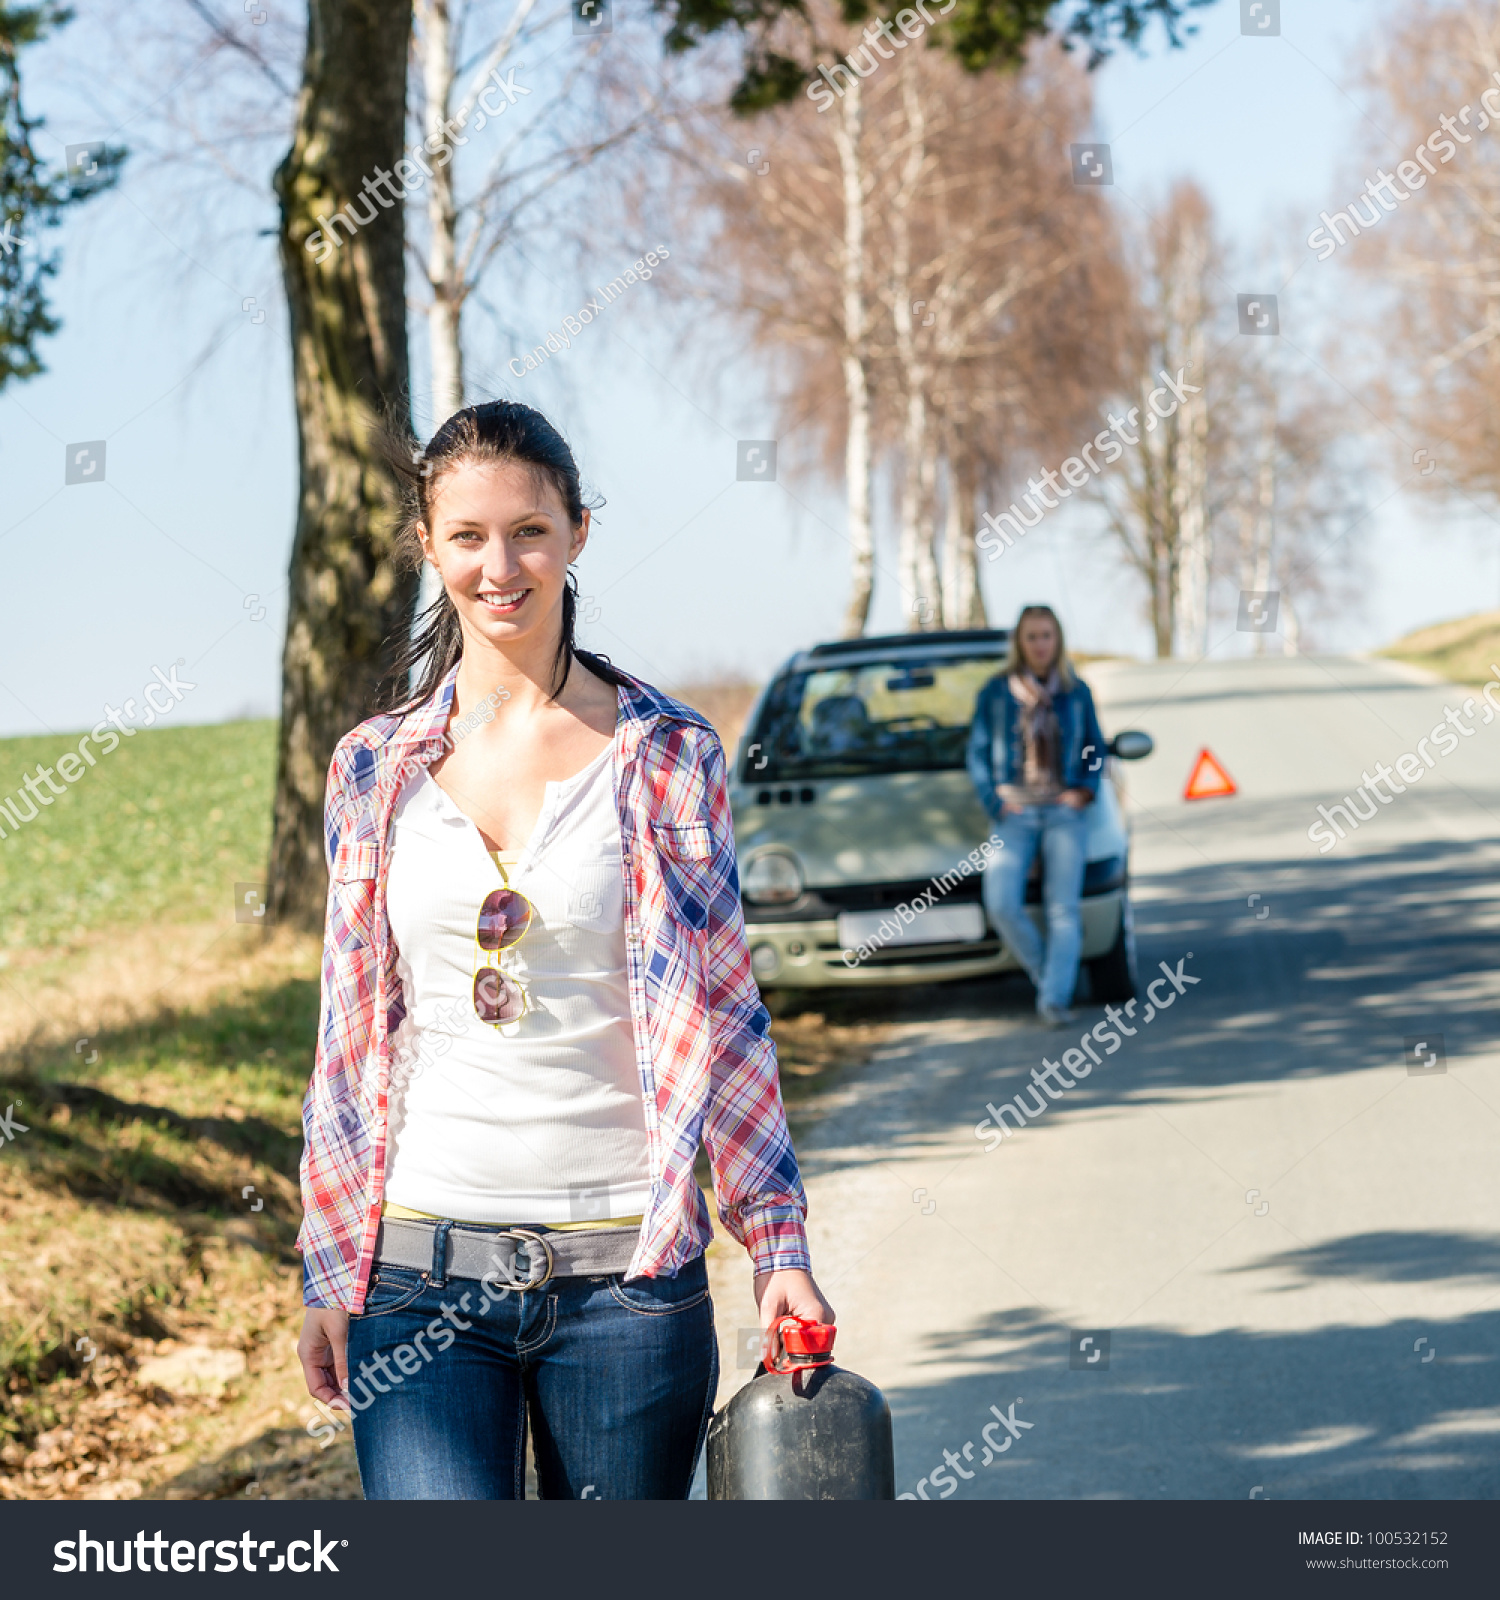 running out of gas young woman walking for petrol can stock photo 100532152 shutterstock. Black Bedroom Furniture Sets. Home Design Ideas